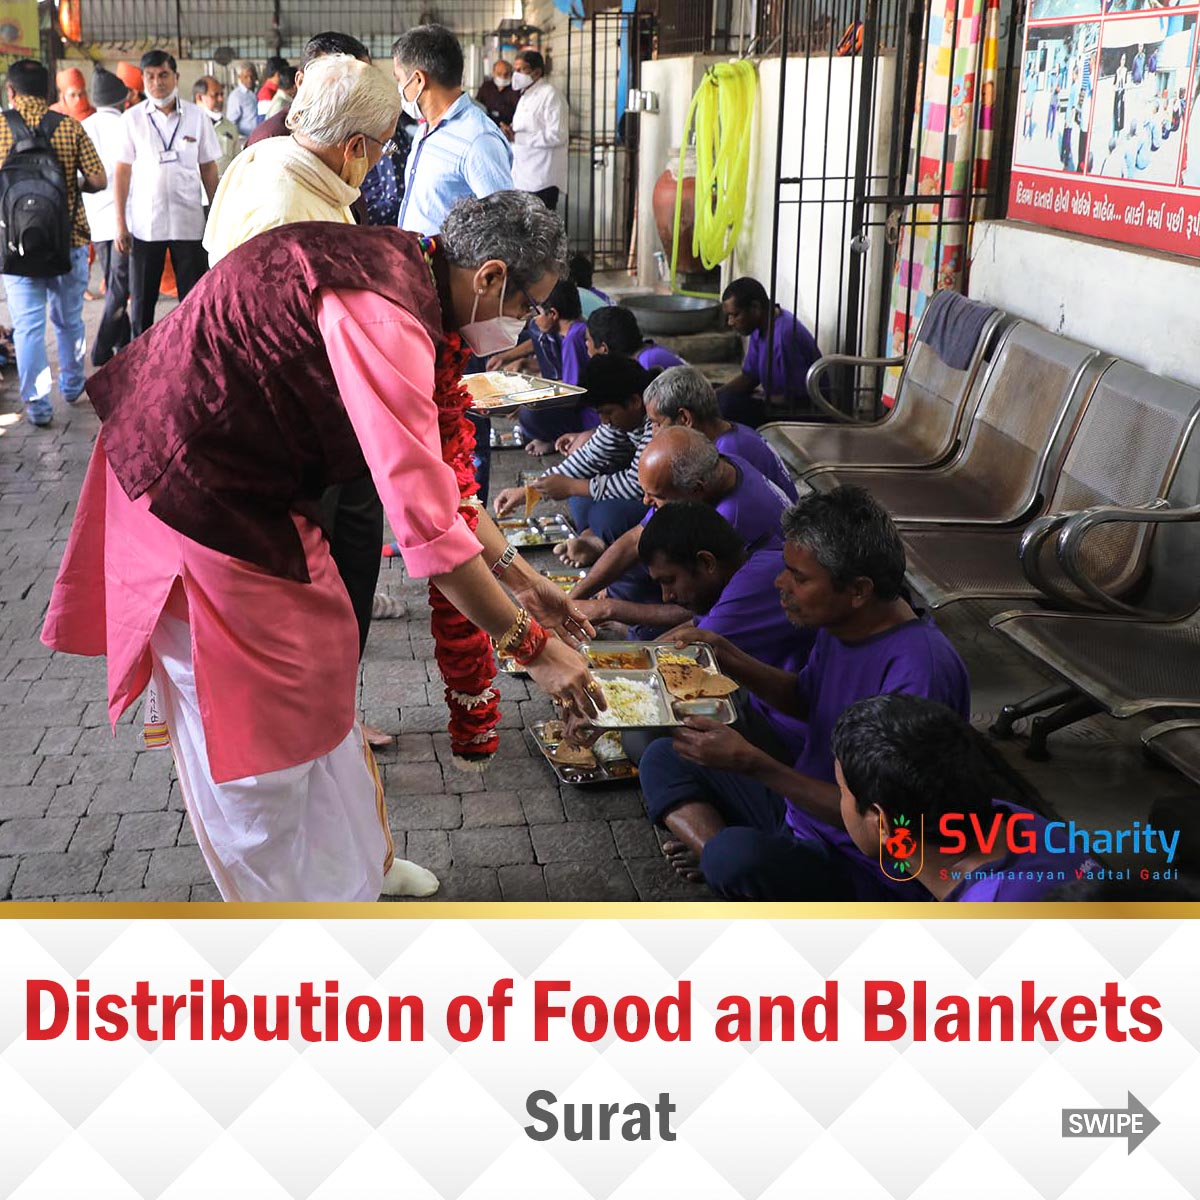 SVG Charity : Distribution of Food and Blankets by LNDYM Surat | 09 Jan 2021